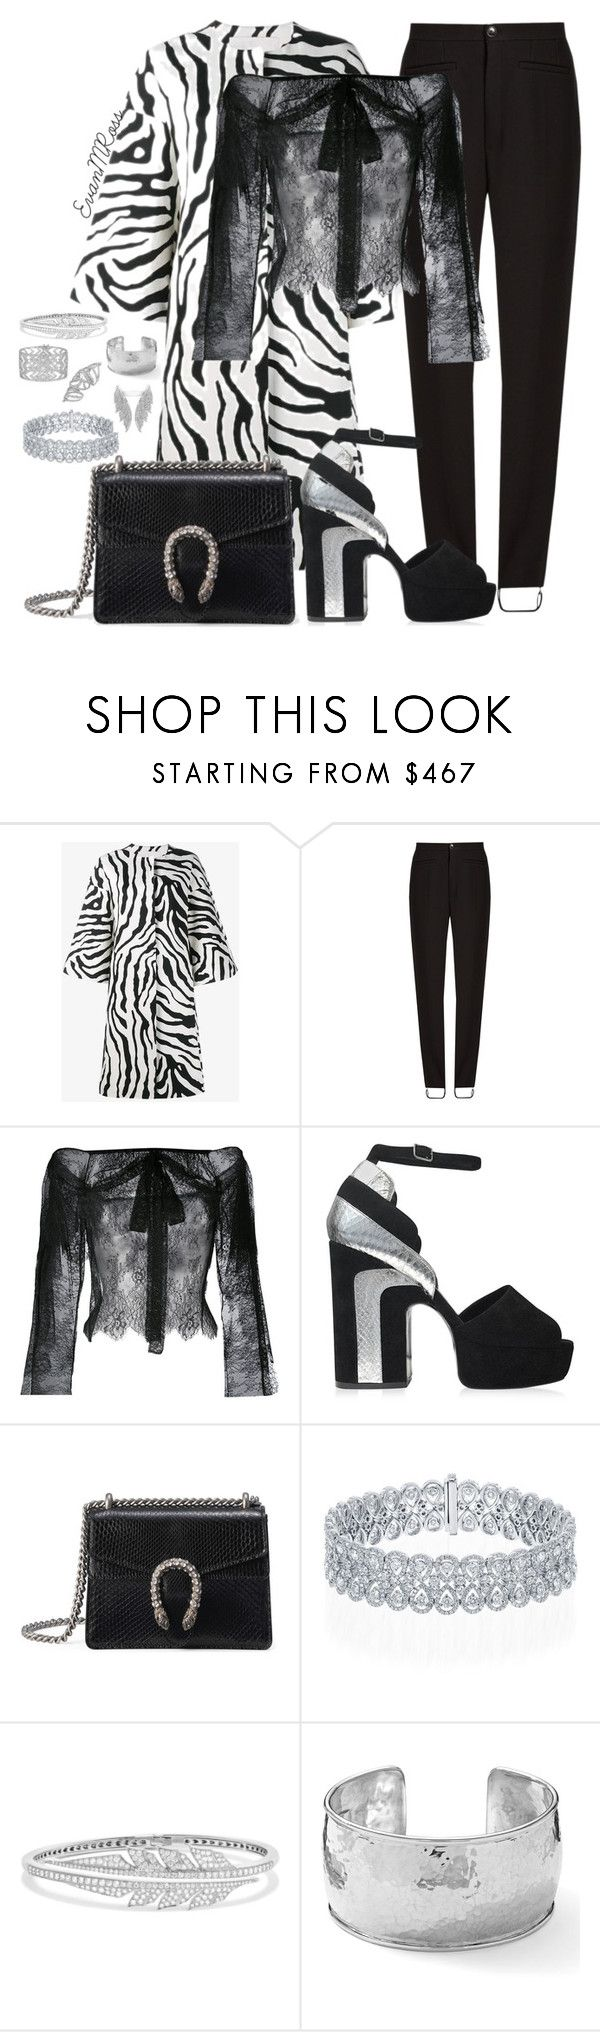 """""""Untitled #1064"""" by irunaftergucci ❤ liked on Polyvore featuring ADAM, Balenciaga, Philosophy di Lorenzo Serafini, Pierre Hardy, Gucci, Stephen Webster and Ippolita"""